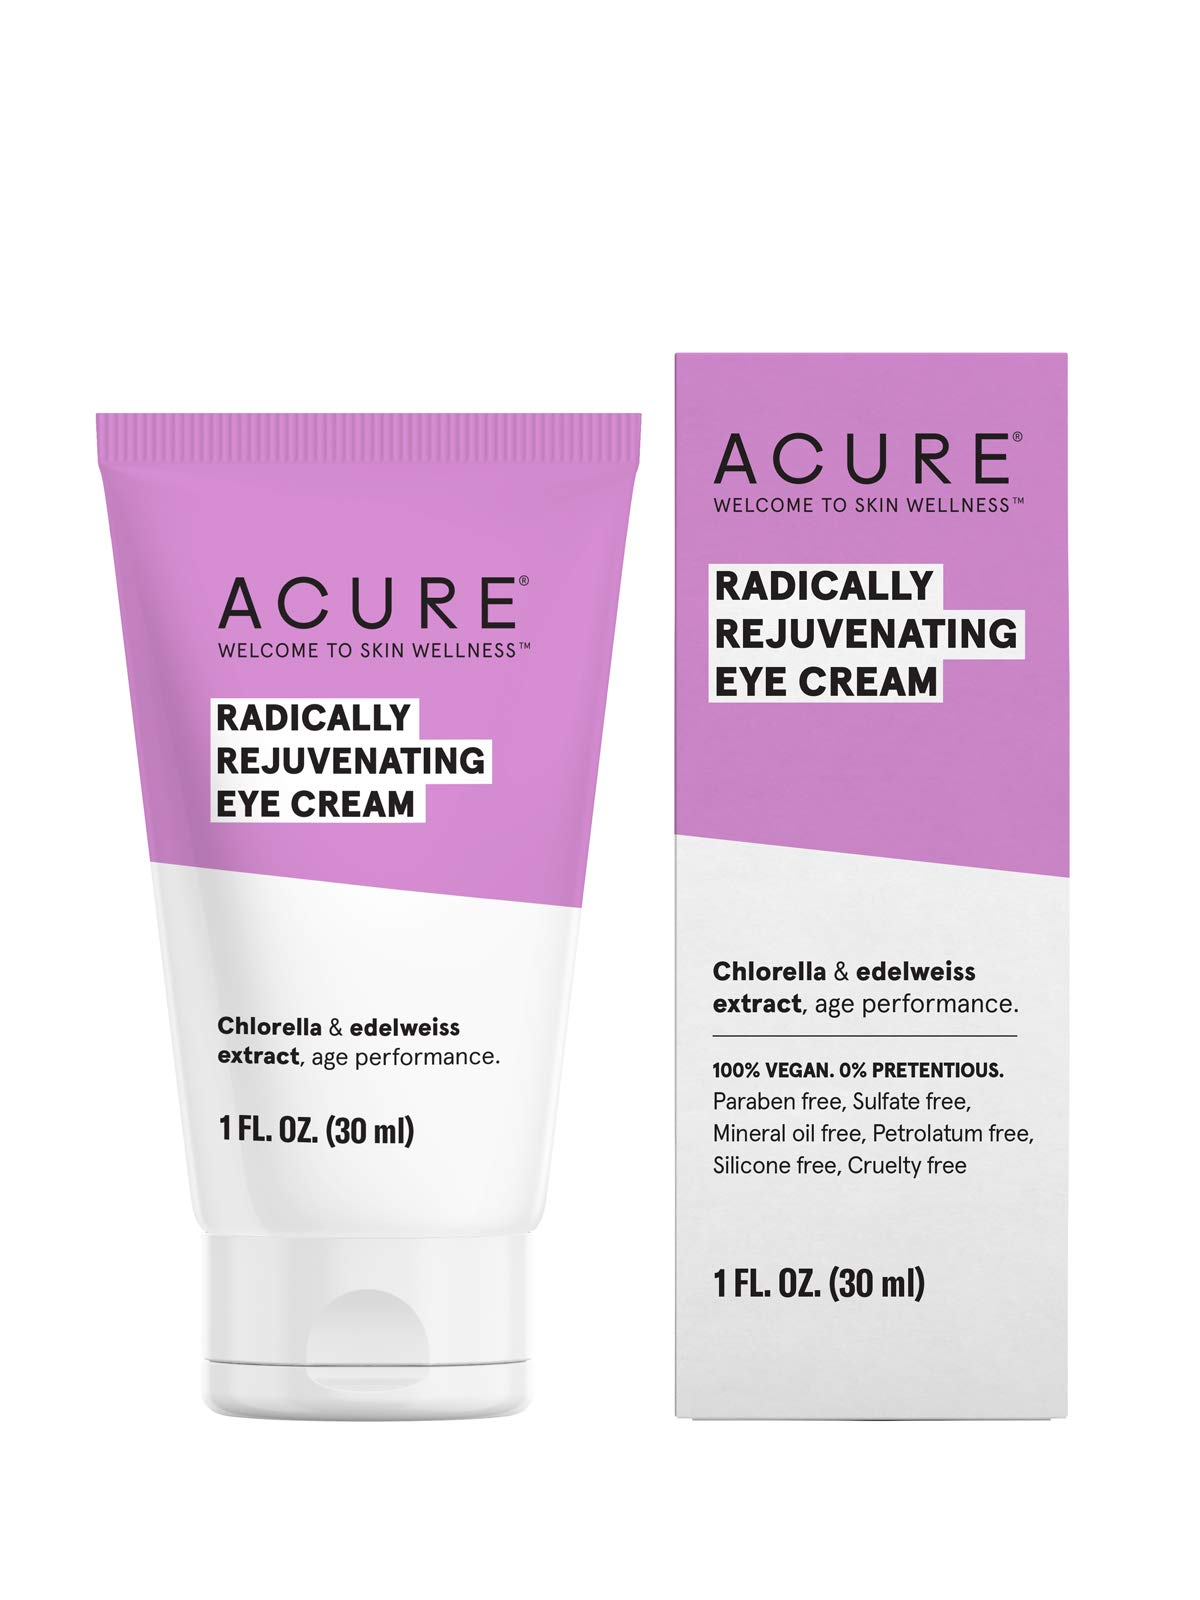 ACURE Radically Rejuvenating Eye Cream, 1 Fl. OZ. (Packaging May Vary) by Acure